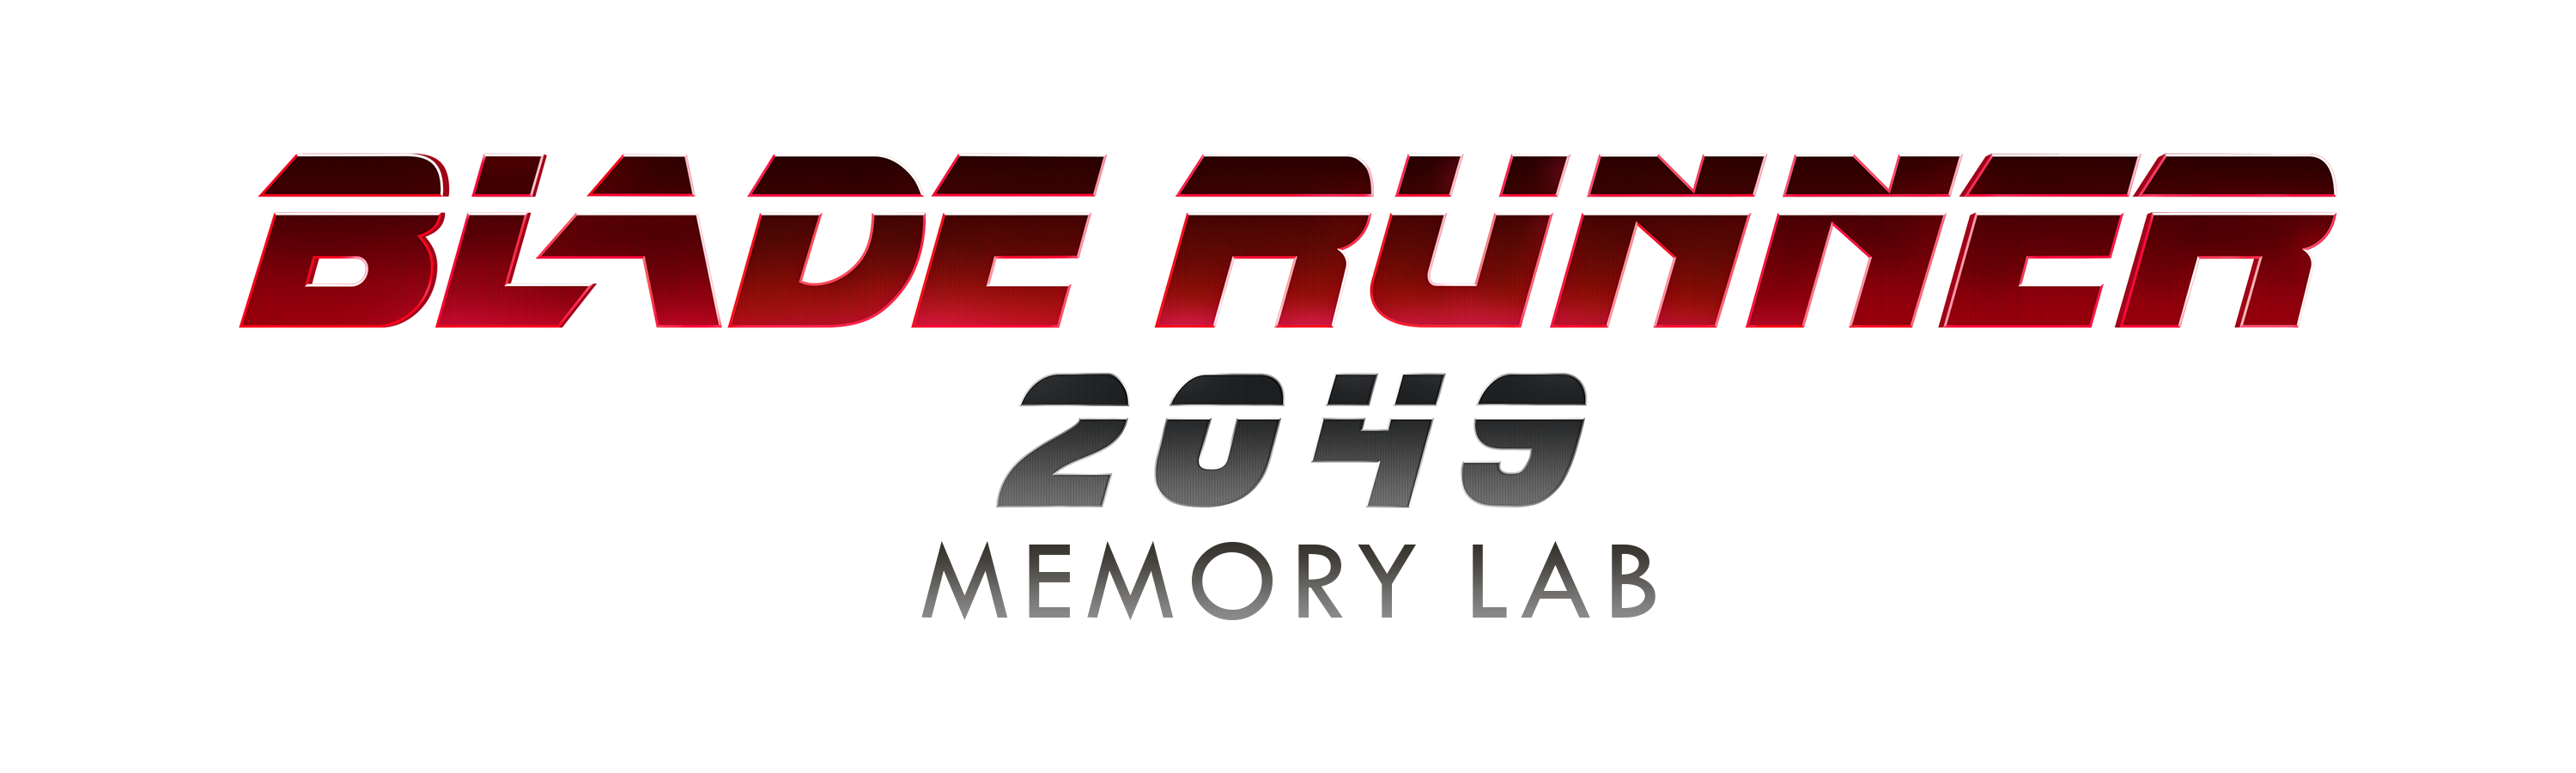 Blade runner 2049 png logo. Press kit download zip